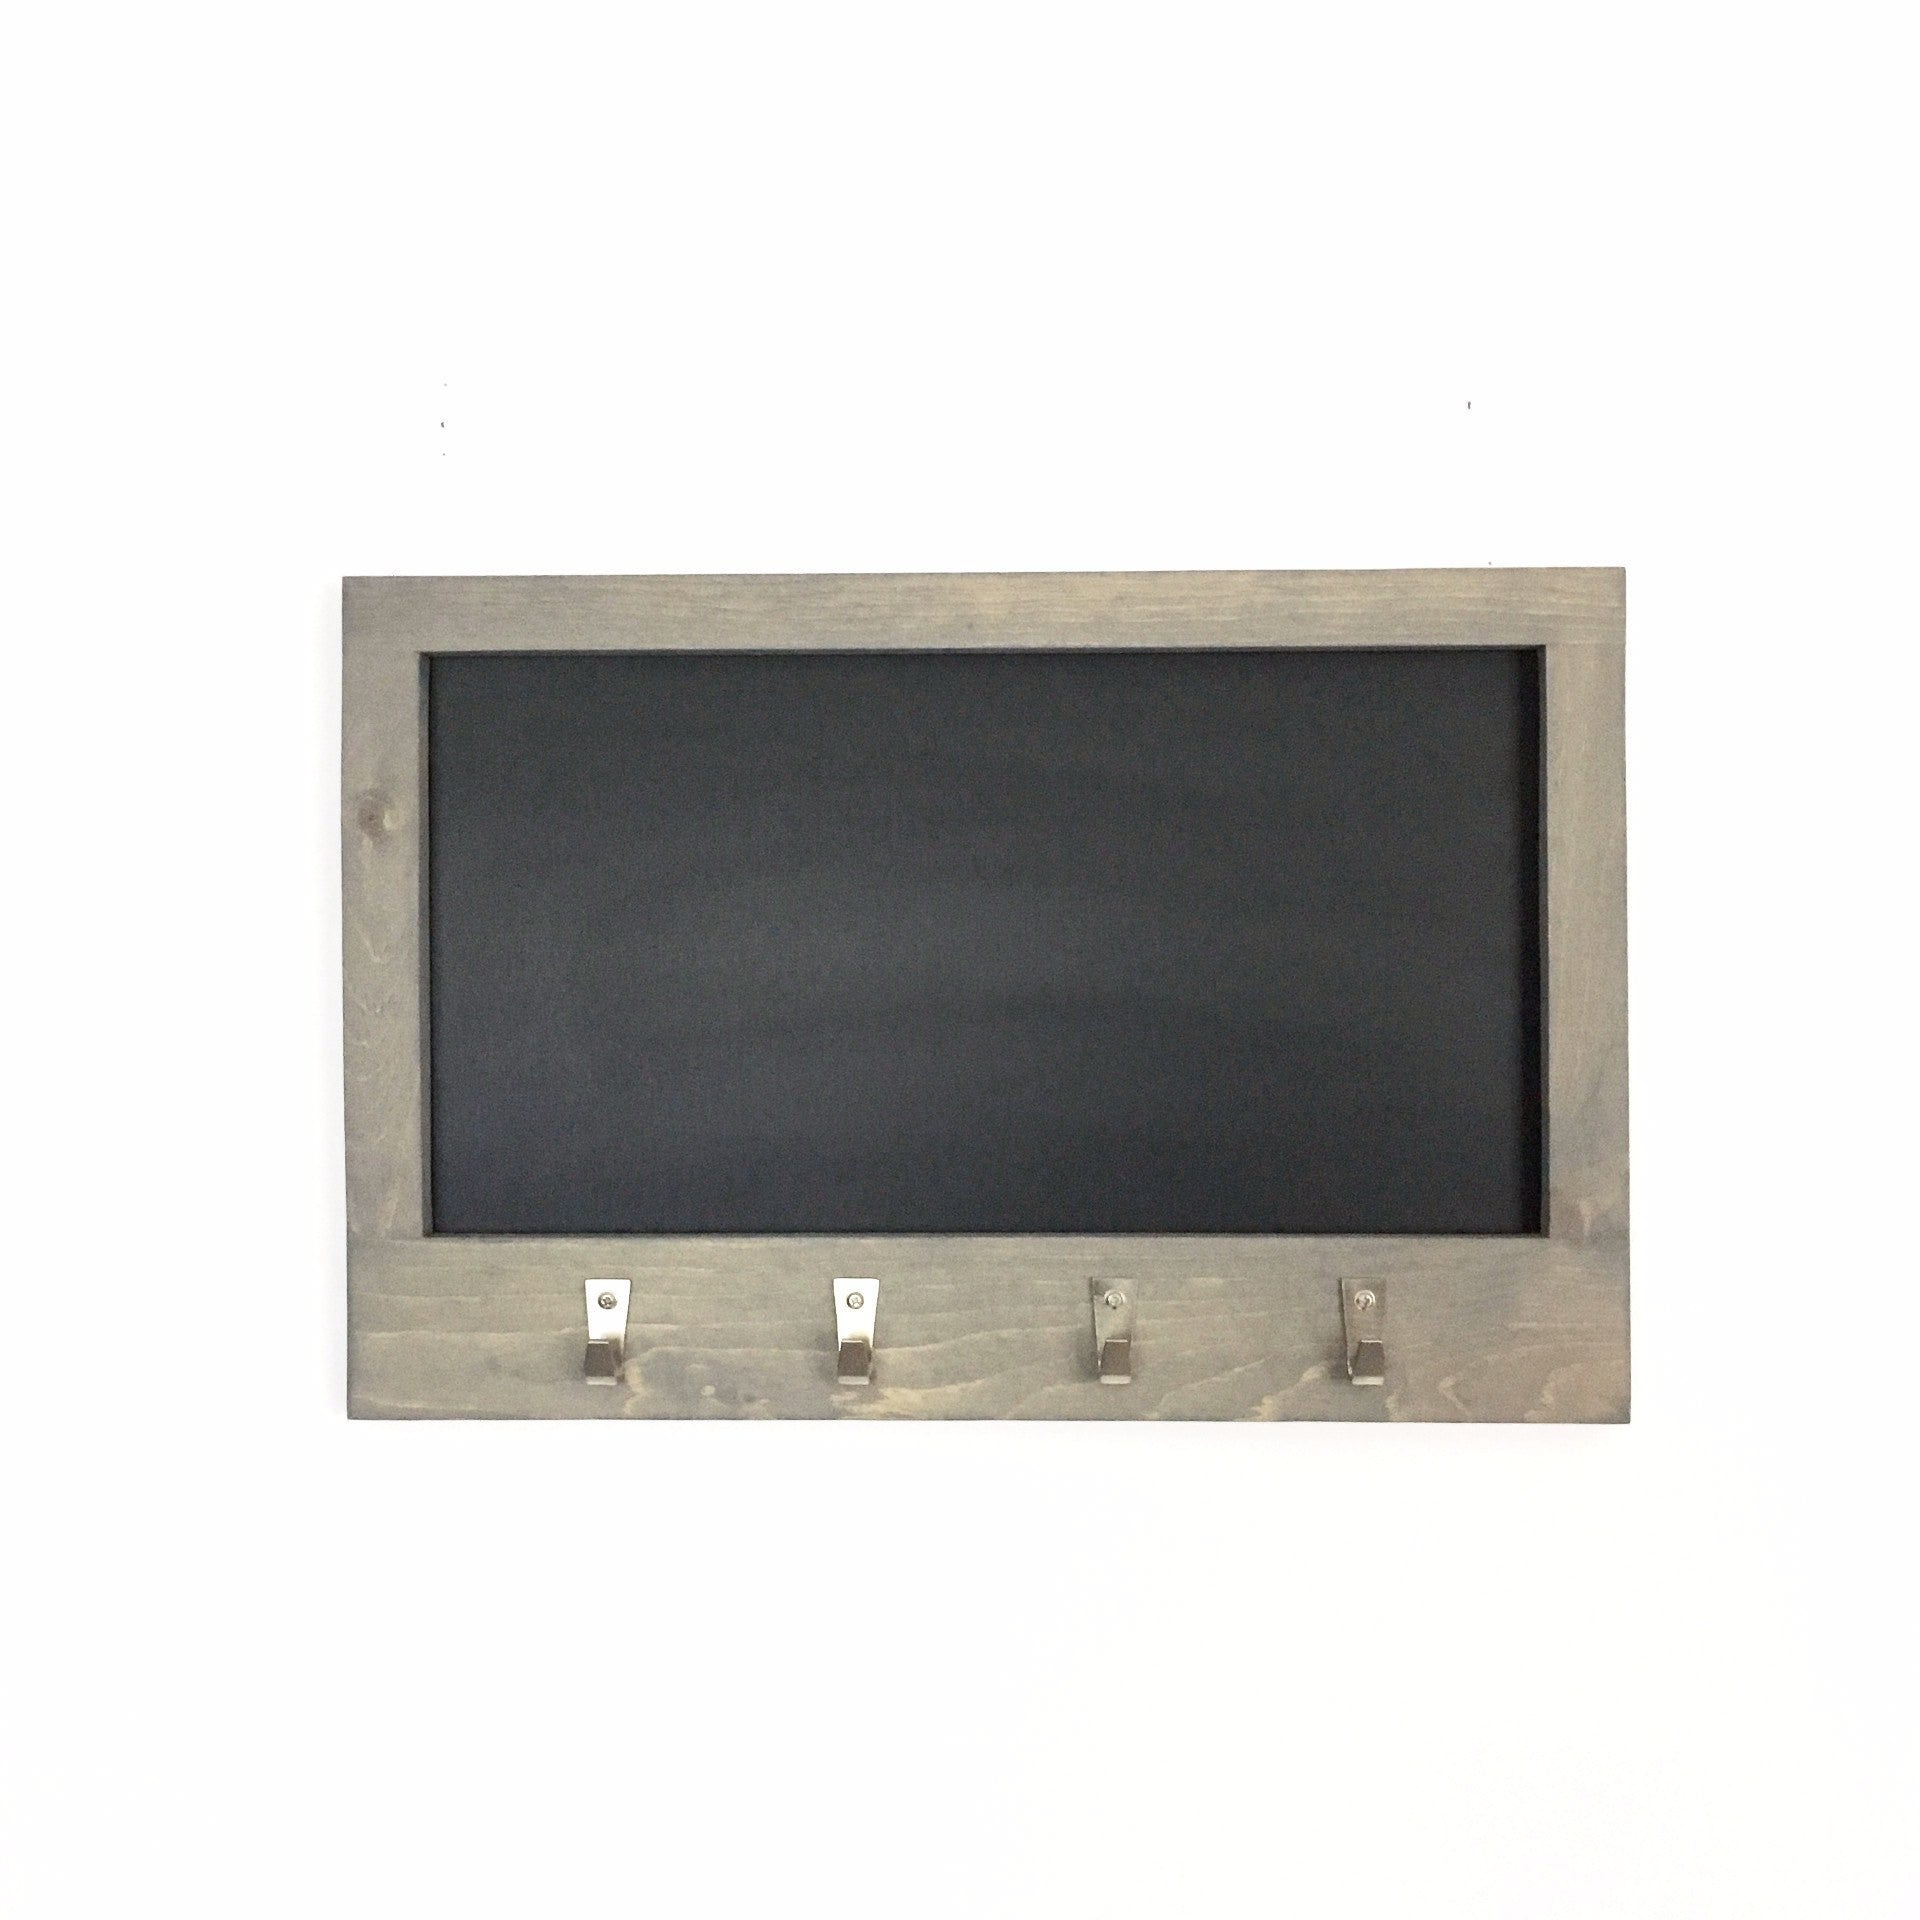 Grey Stained Chalkboard With Pine Frame And 4 Nickel Hooks 24 X 16